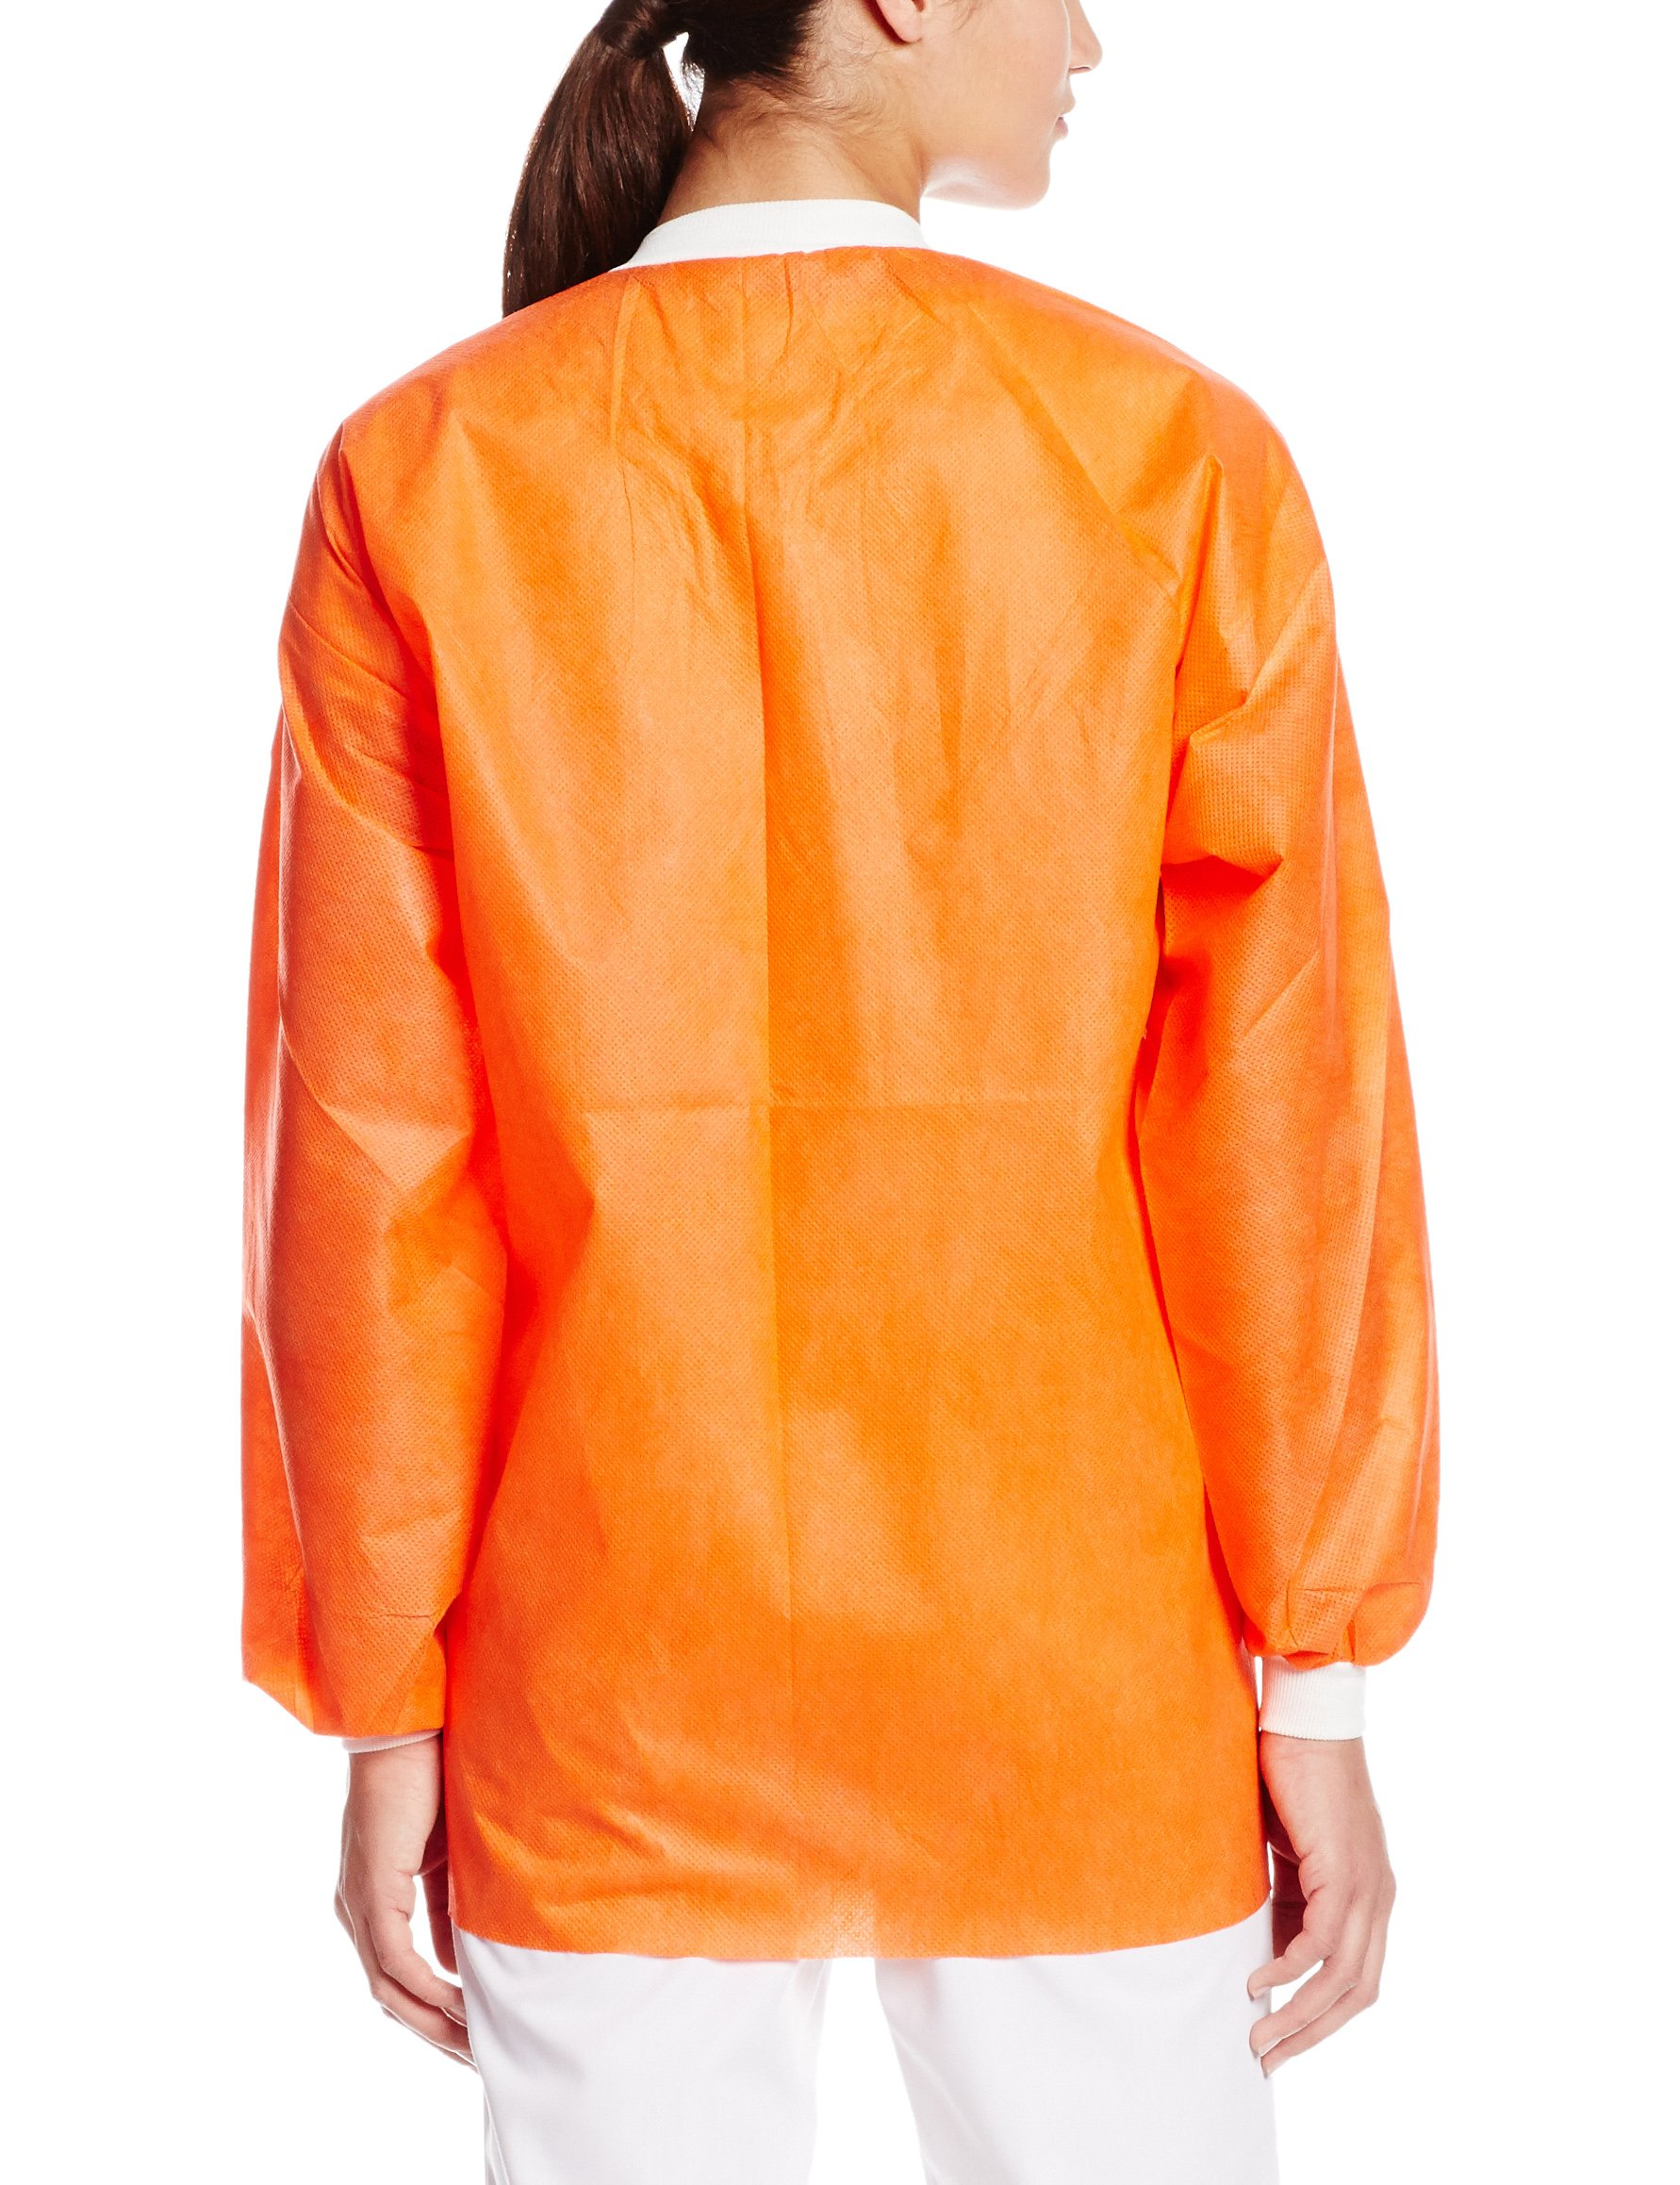 ValuMax 3630ORXL Extra-Safe, Wrinkle-Free, Noble Looking Disposable SMS Hip Length Jacket, Orange, XL, Pack of 10 by Valumax (Image #2)